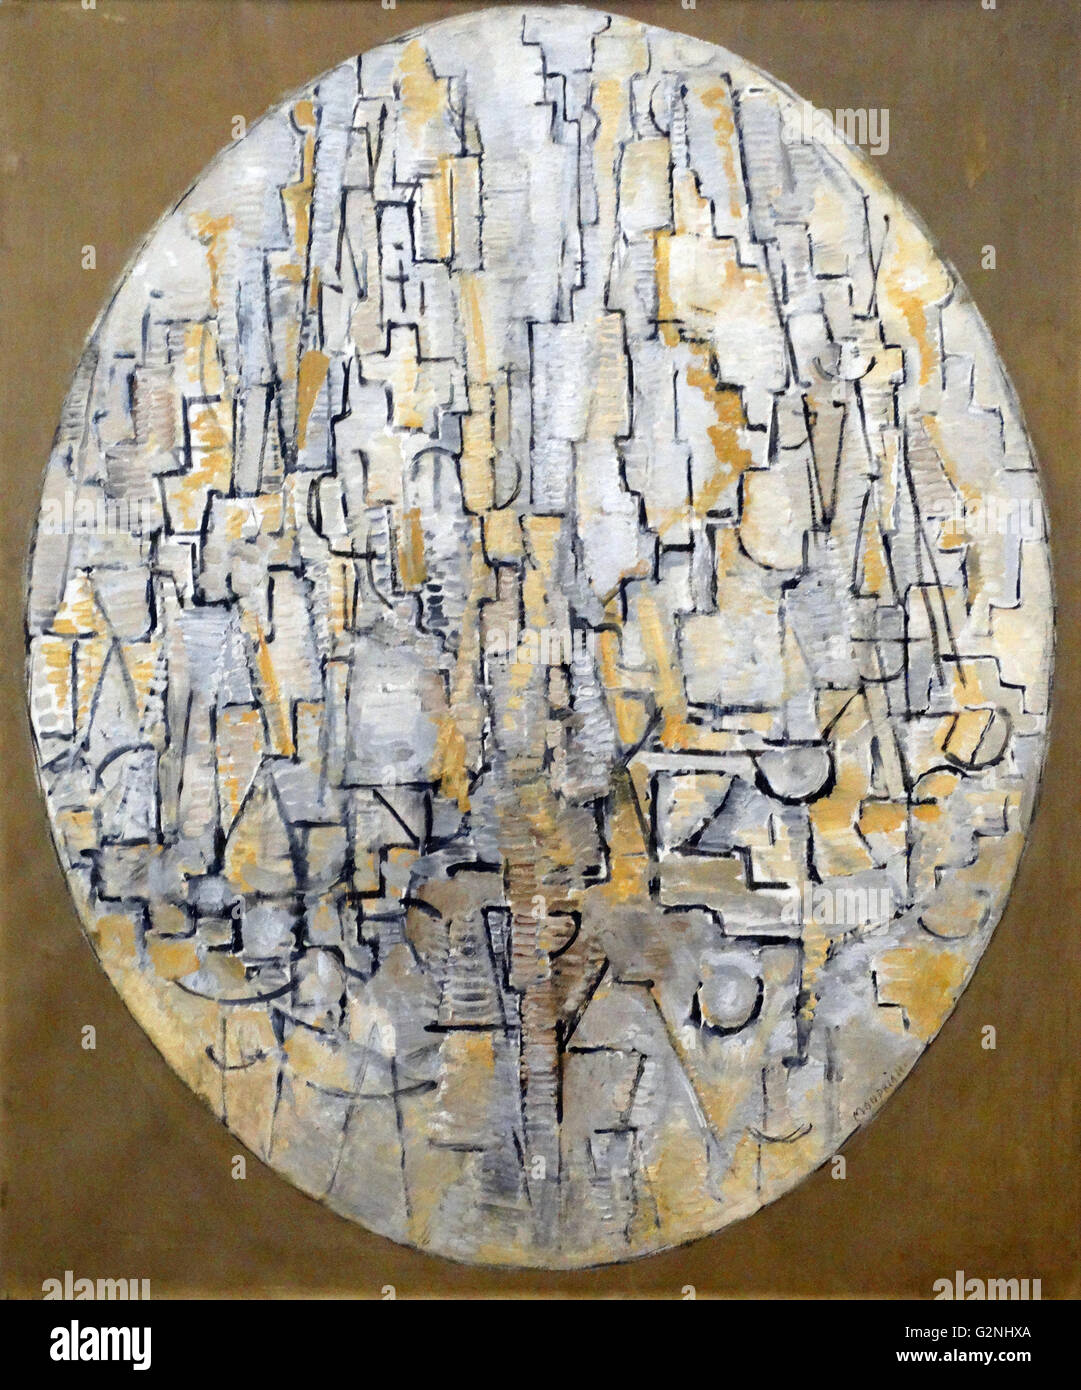 Tableau No 3 : Composition in Oval by Piet Mondrian - Stock Image